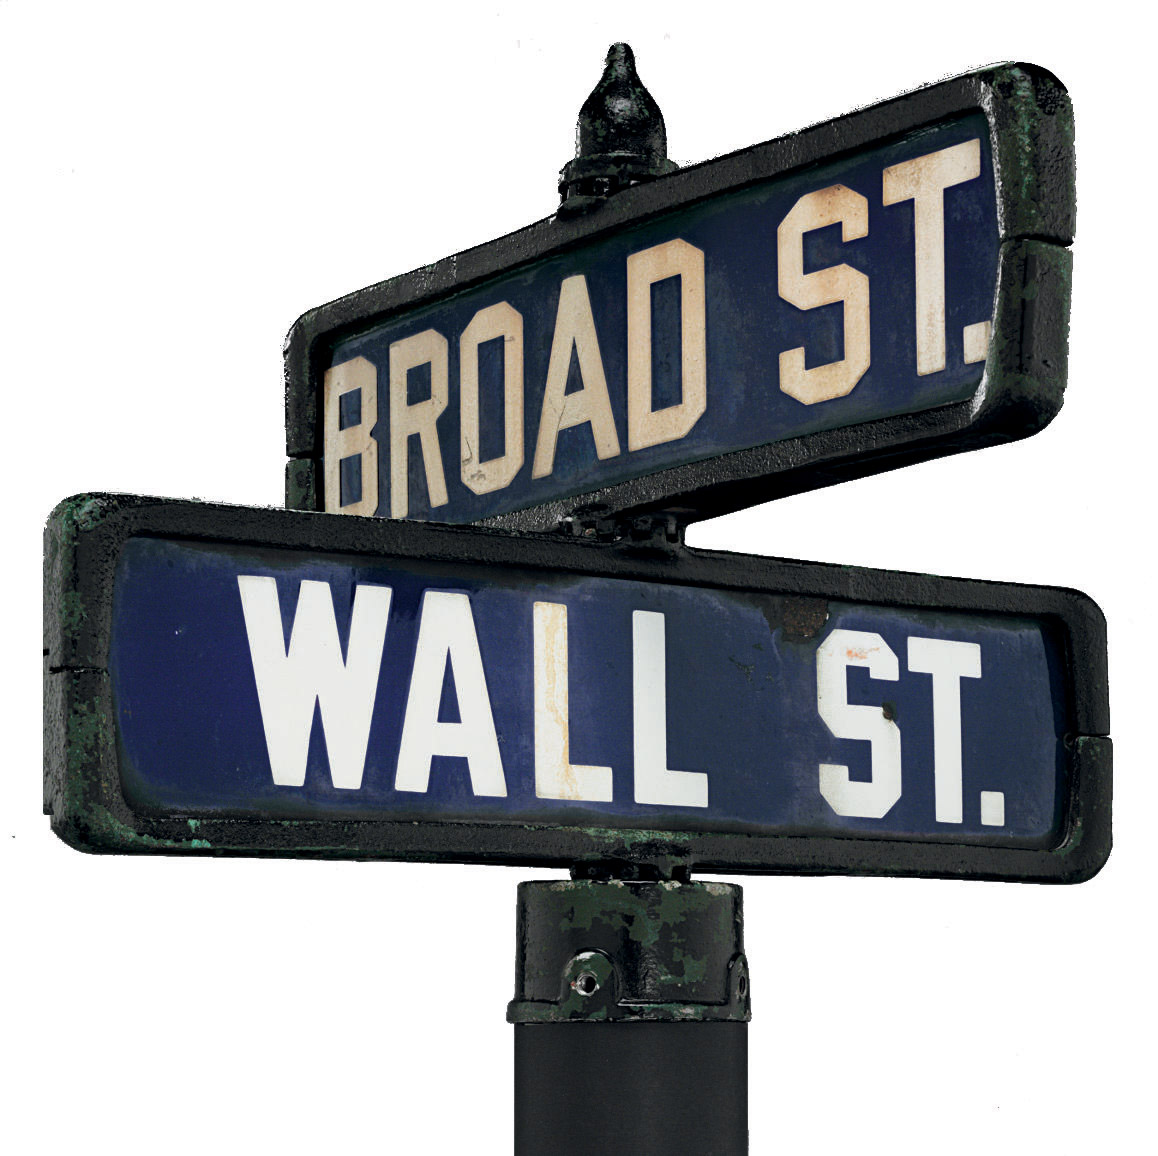 [NEW YORK -- WALL ST.] Wall St